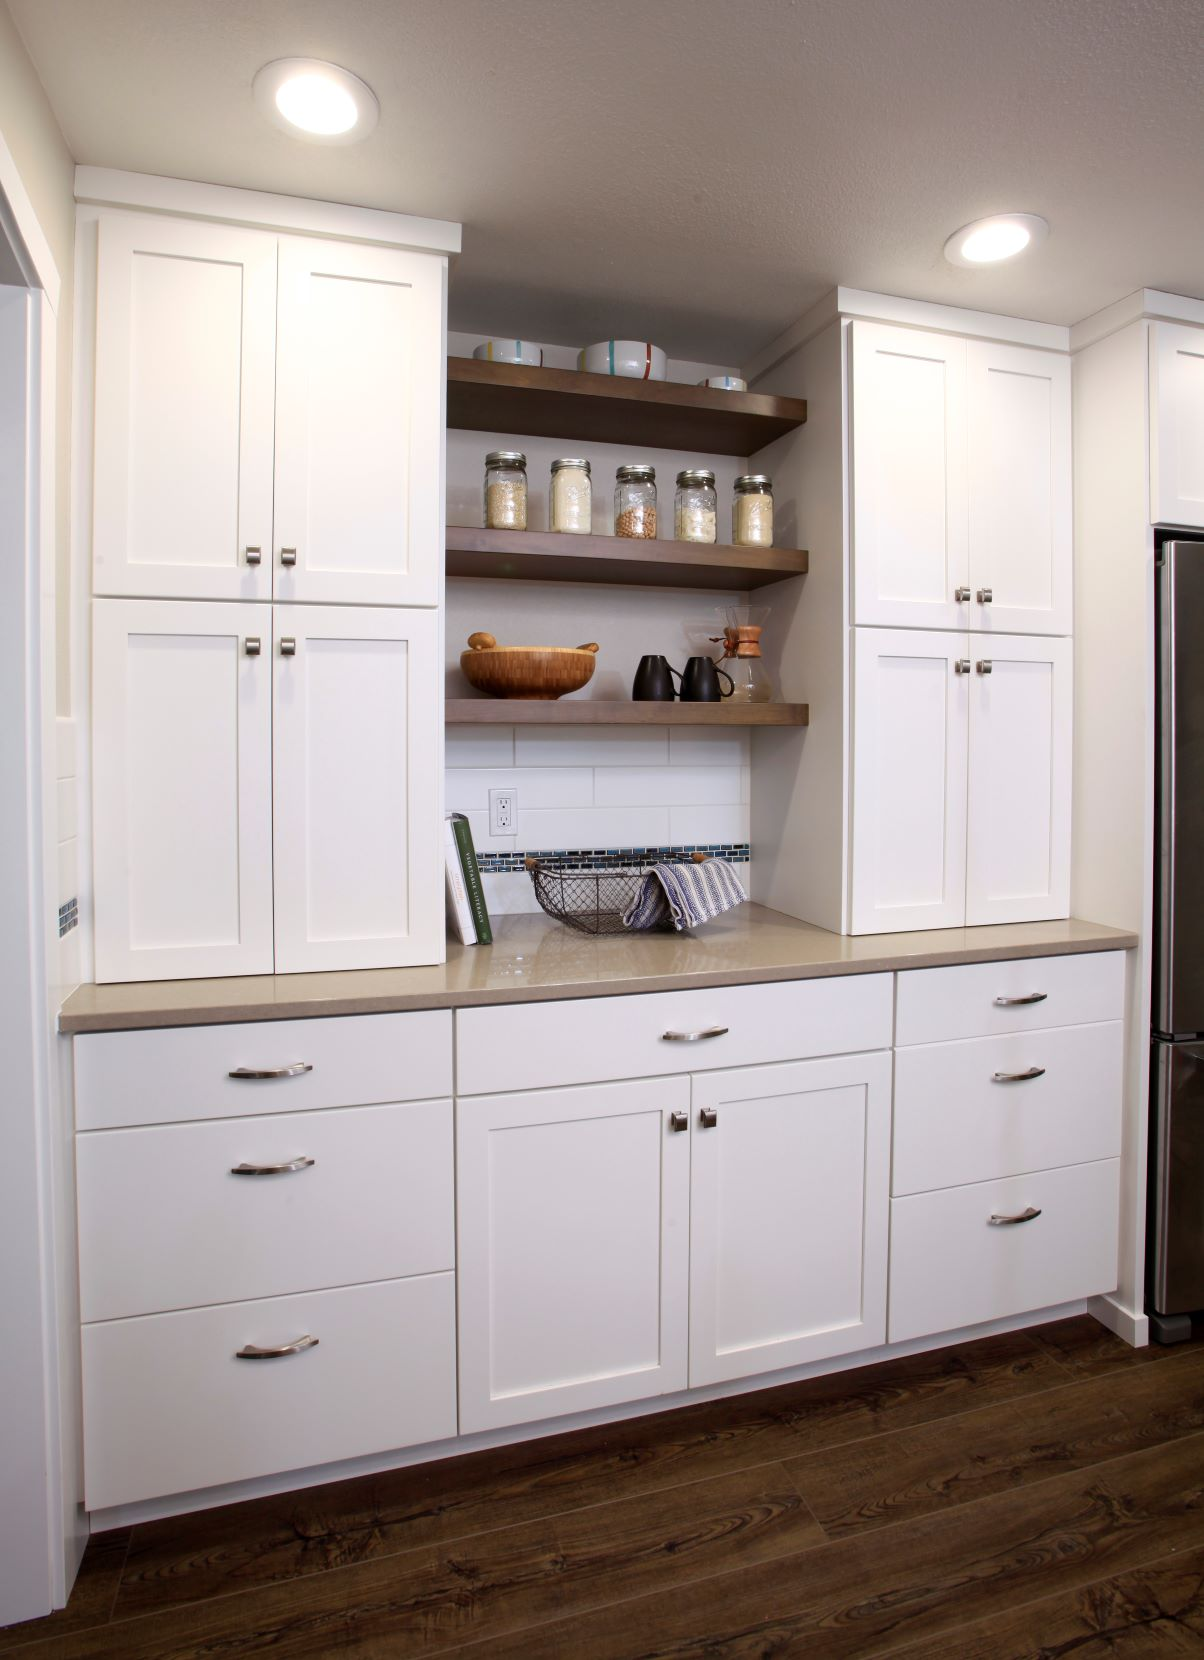 The redesigned kitchen includes plenty of storage space.